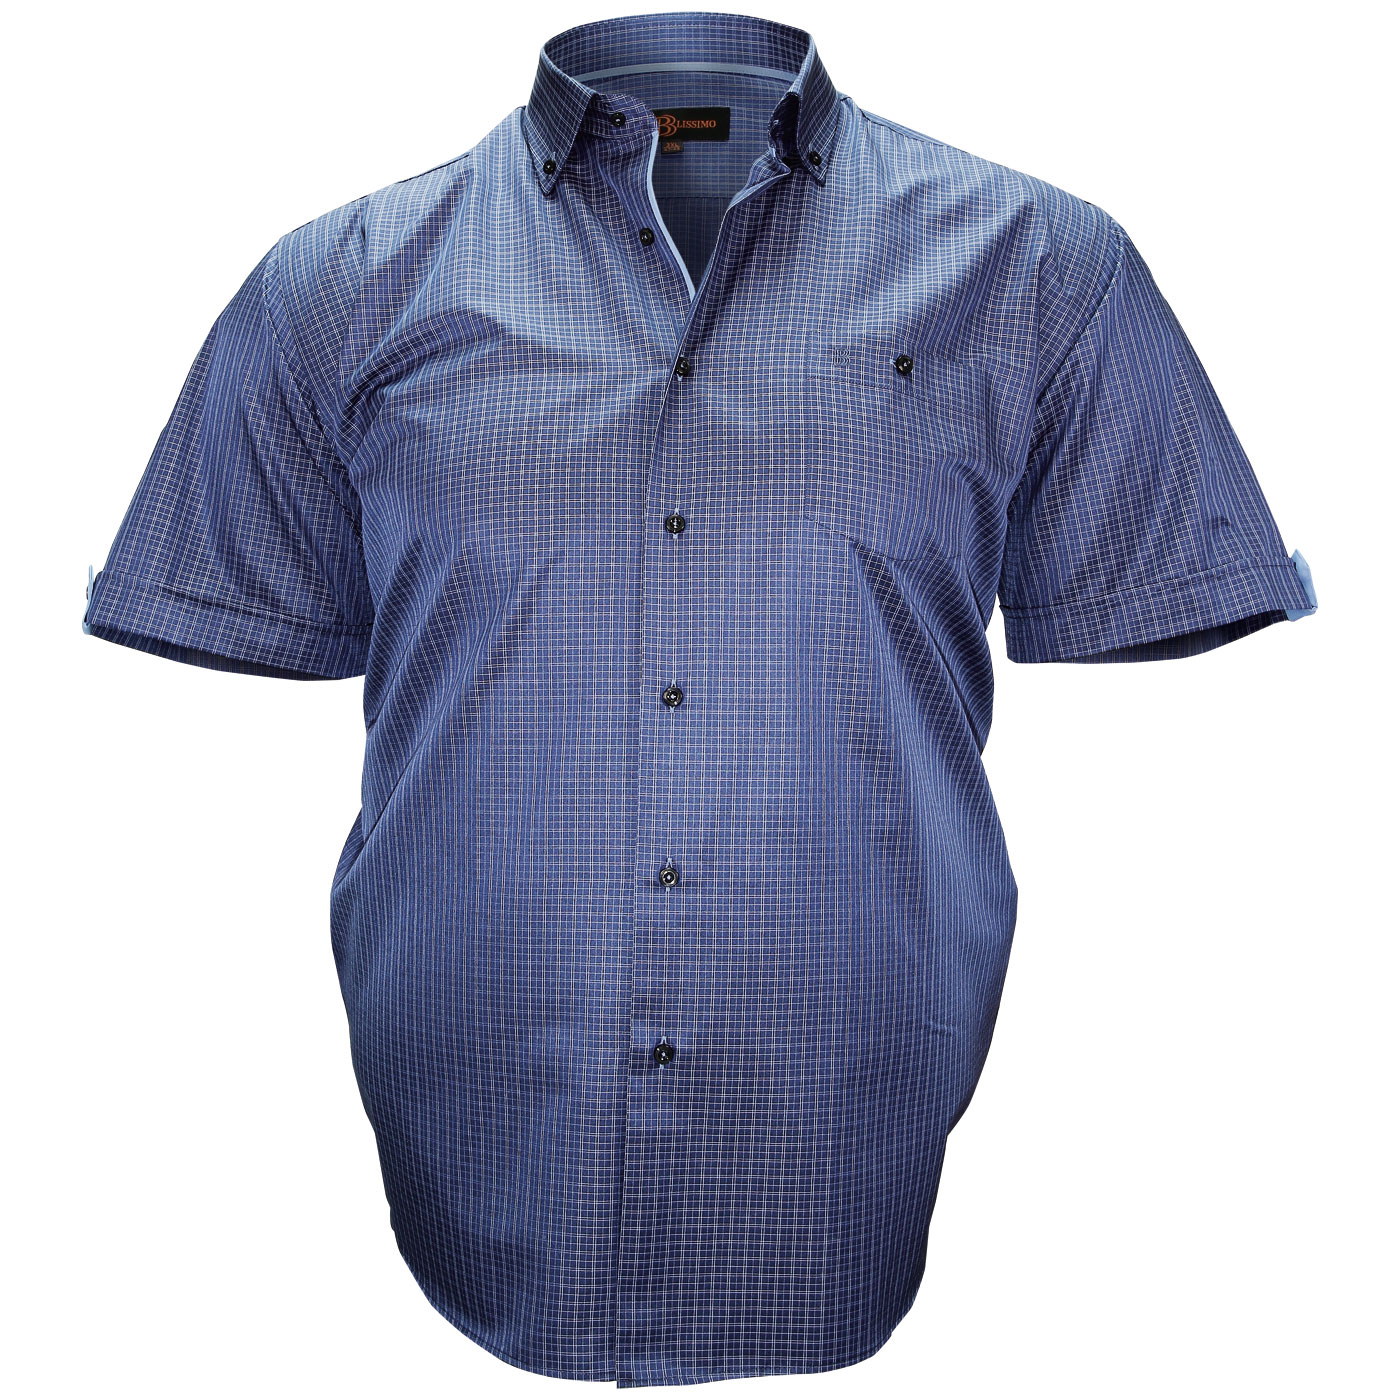 Large Sizes Shoirts Sleeves Shirt for Men Sizes 2XL to 6XL